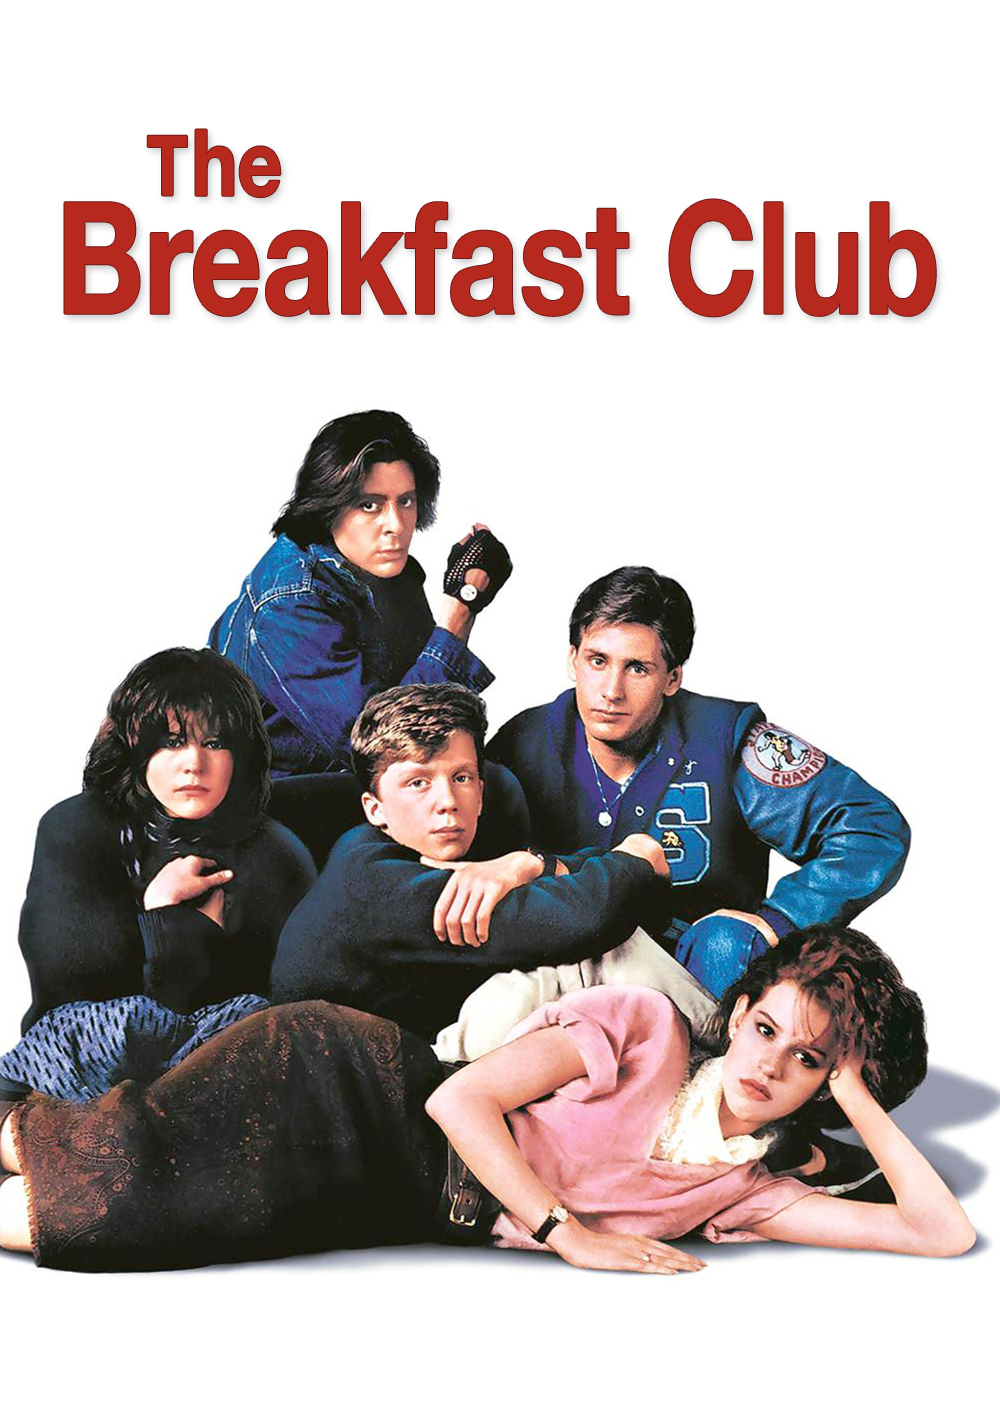 The breakfast club movie clipart vector royalty free The Breakfast Club | Movie fanart | fanart.tv vector royalty free